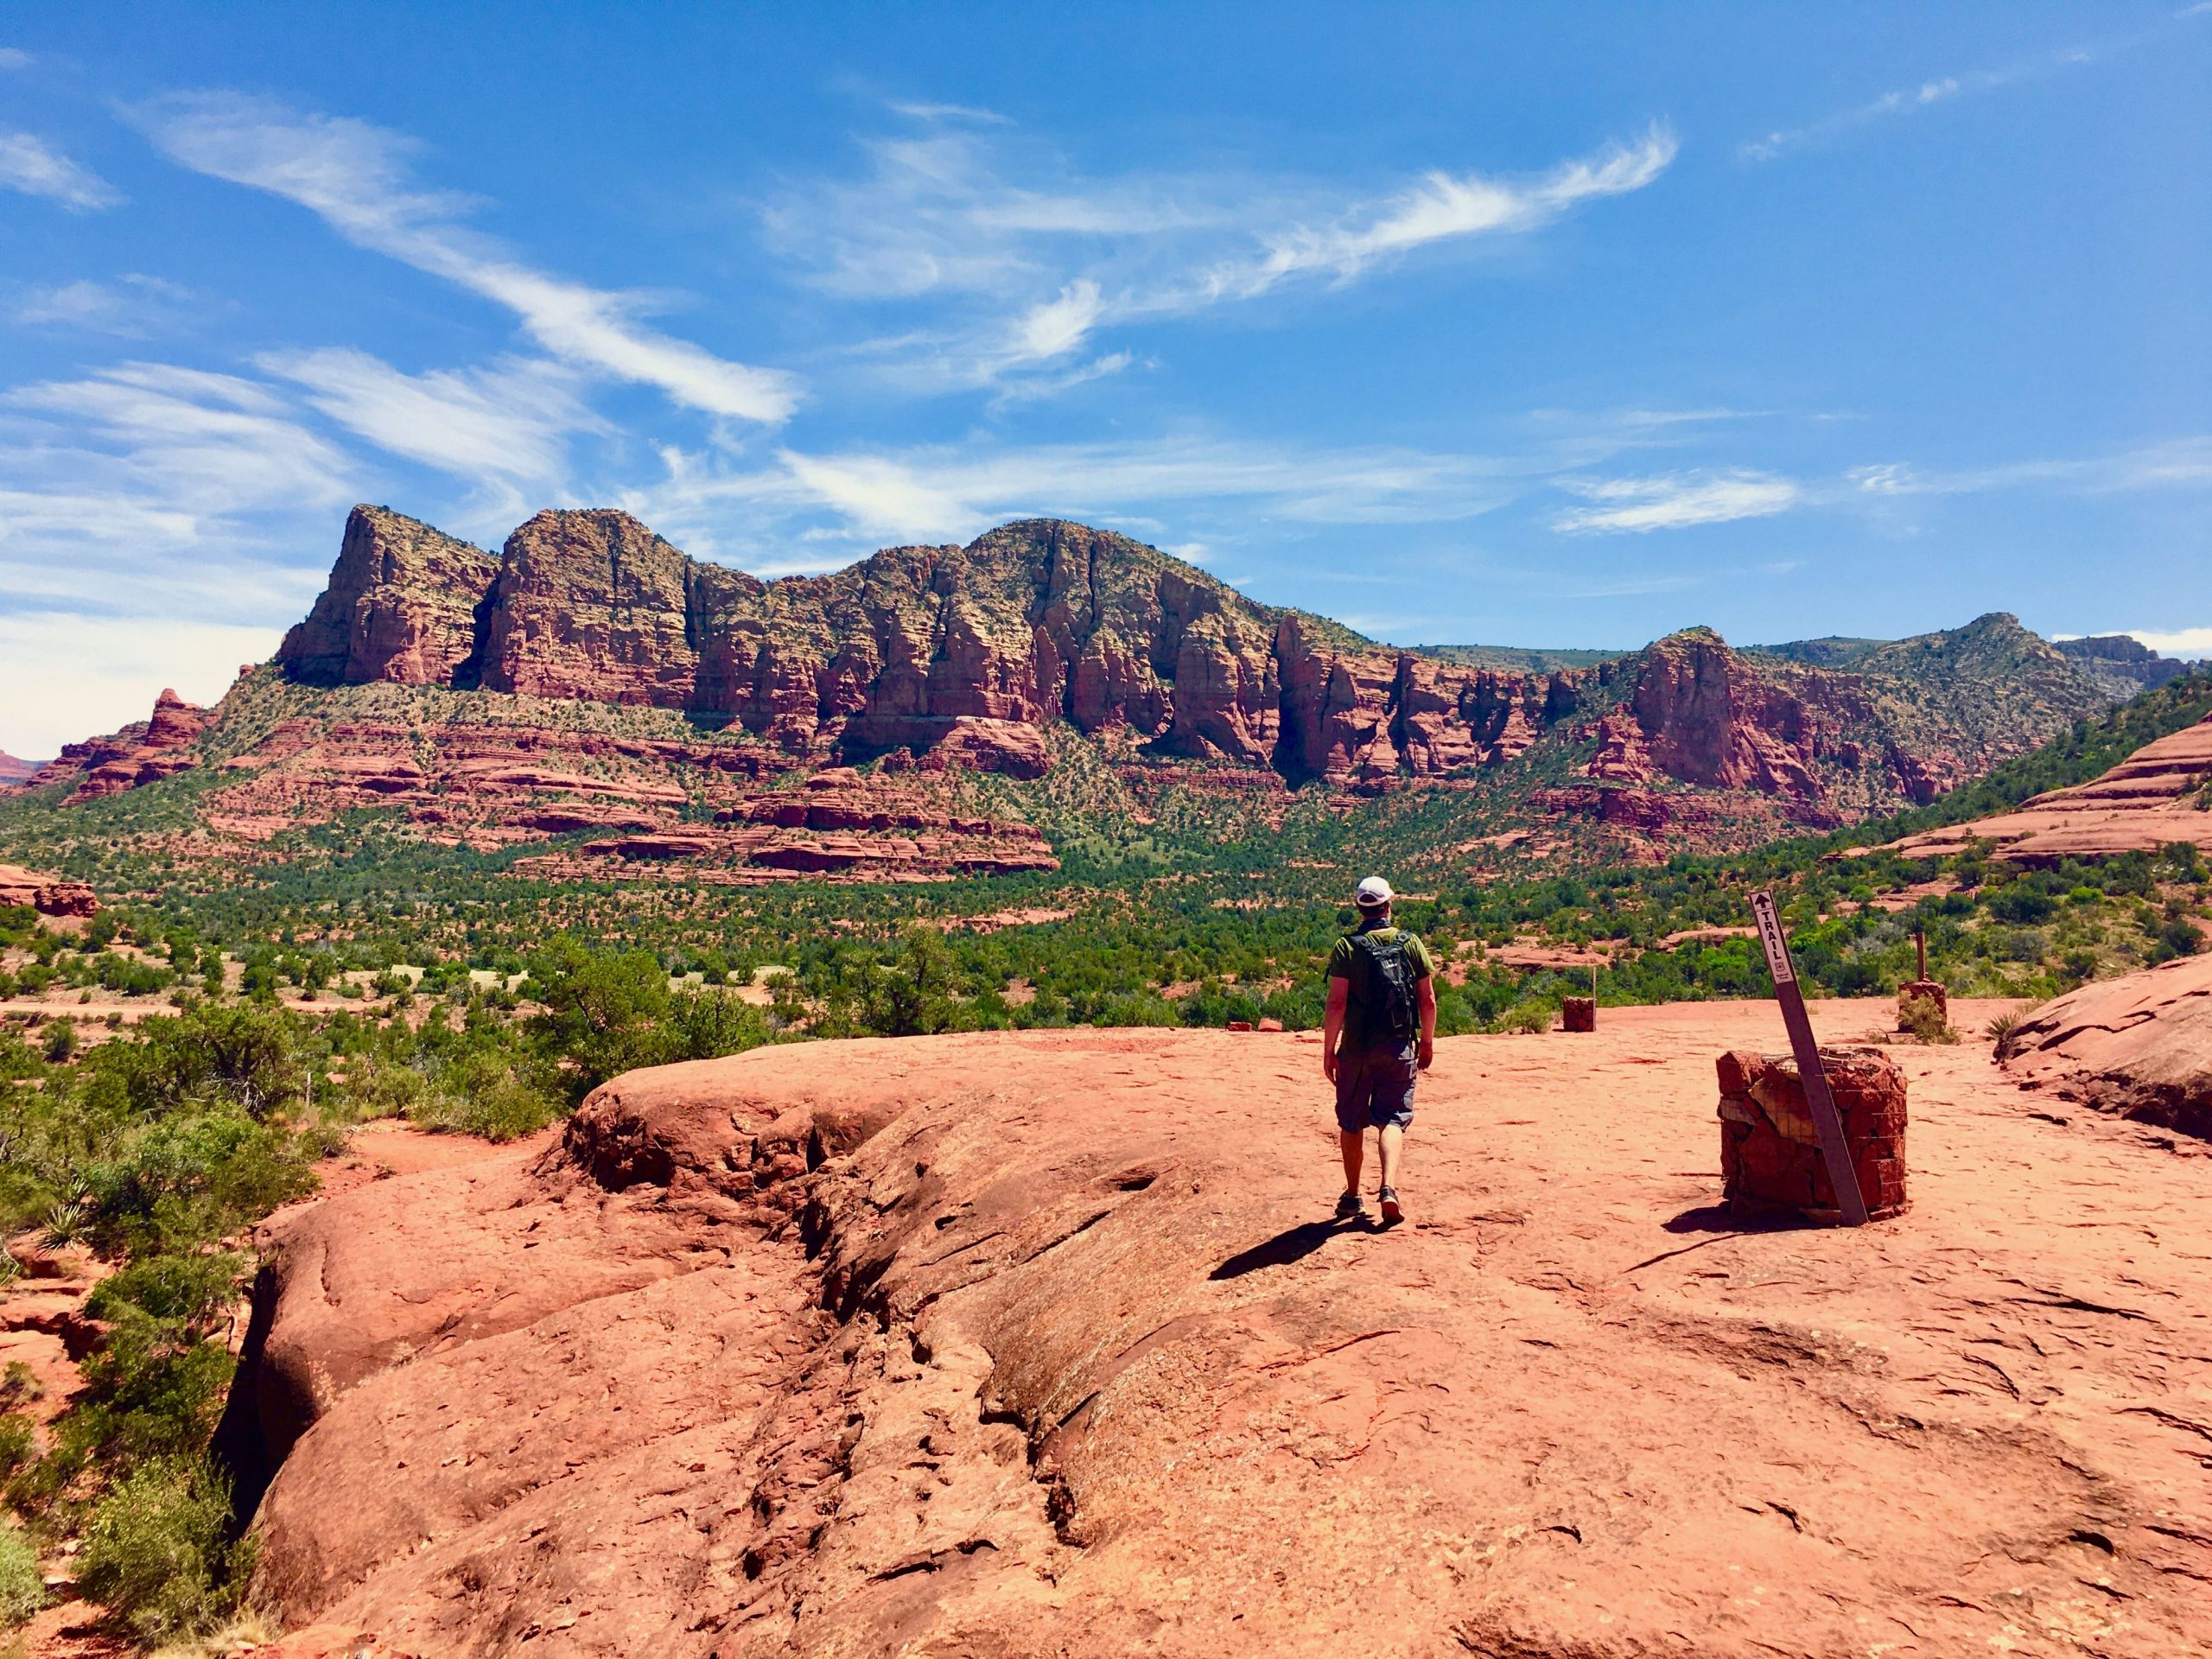 Justin on the Bell Rock Trail Sedona